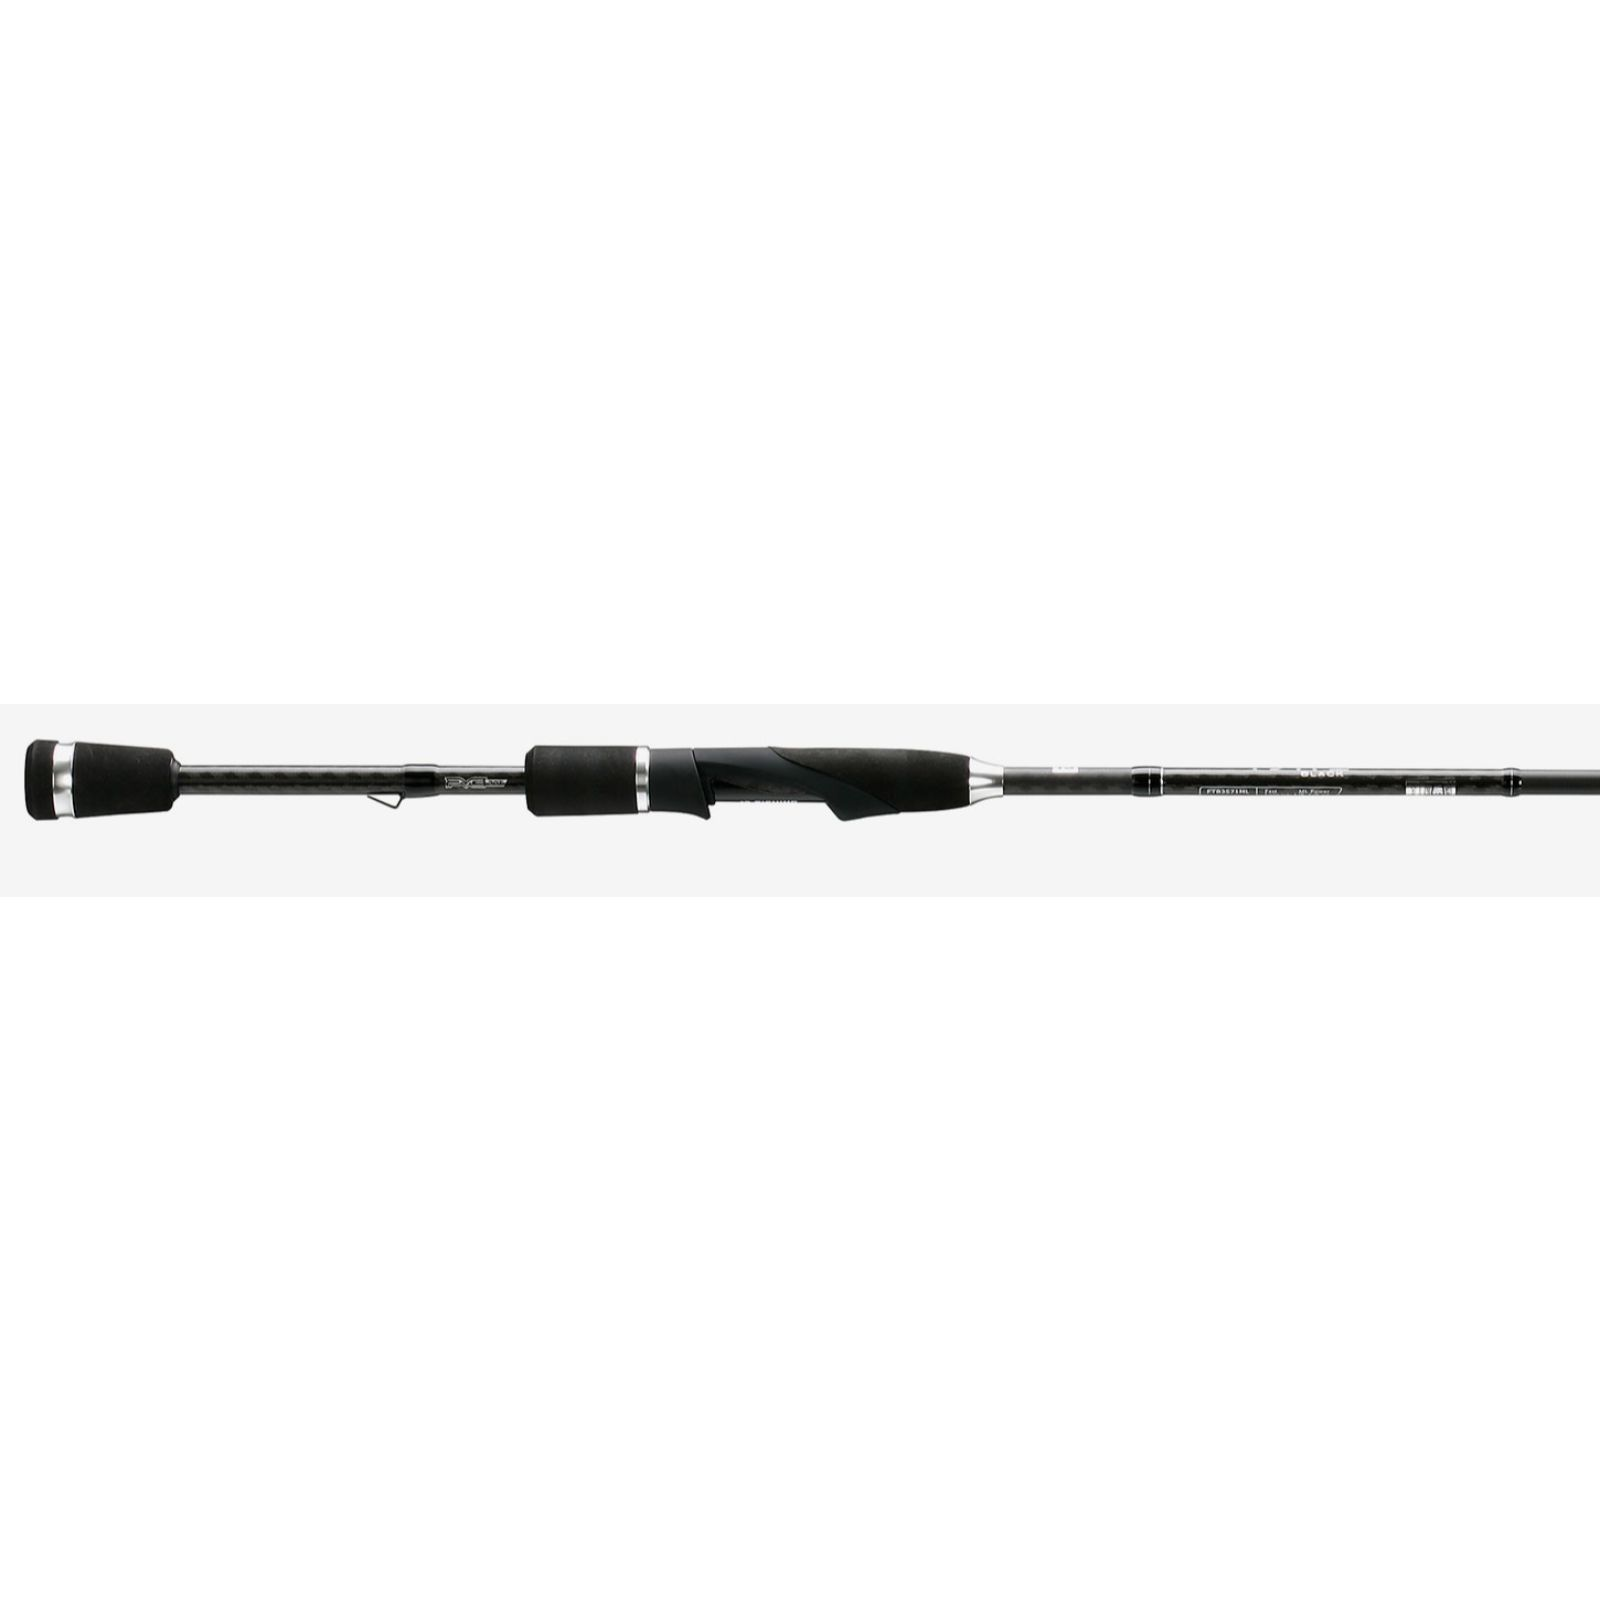 13 Fishing Fate Black 7ft 1in M Spinning Rod